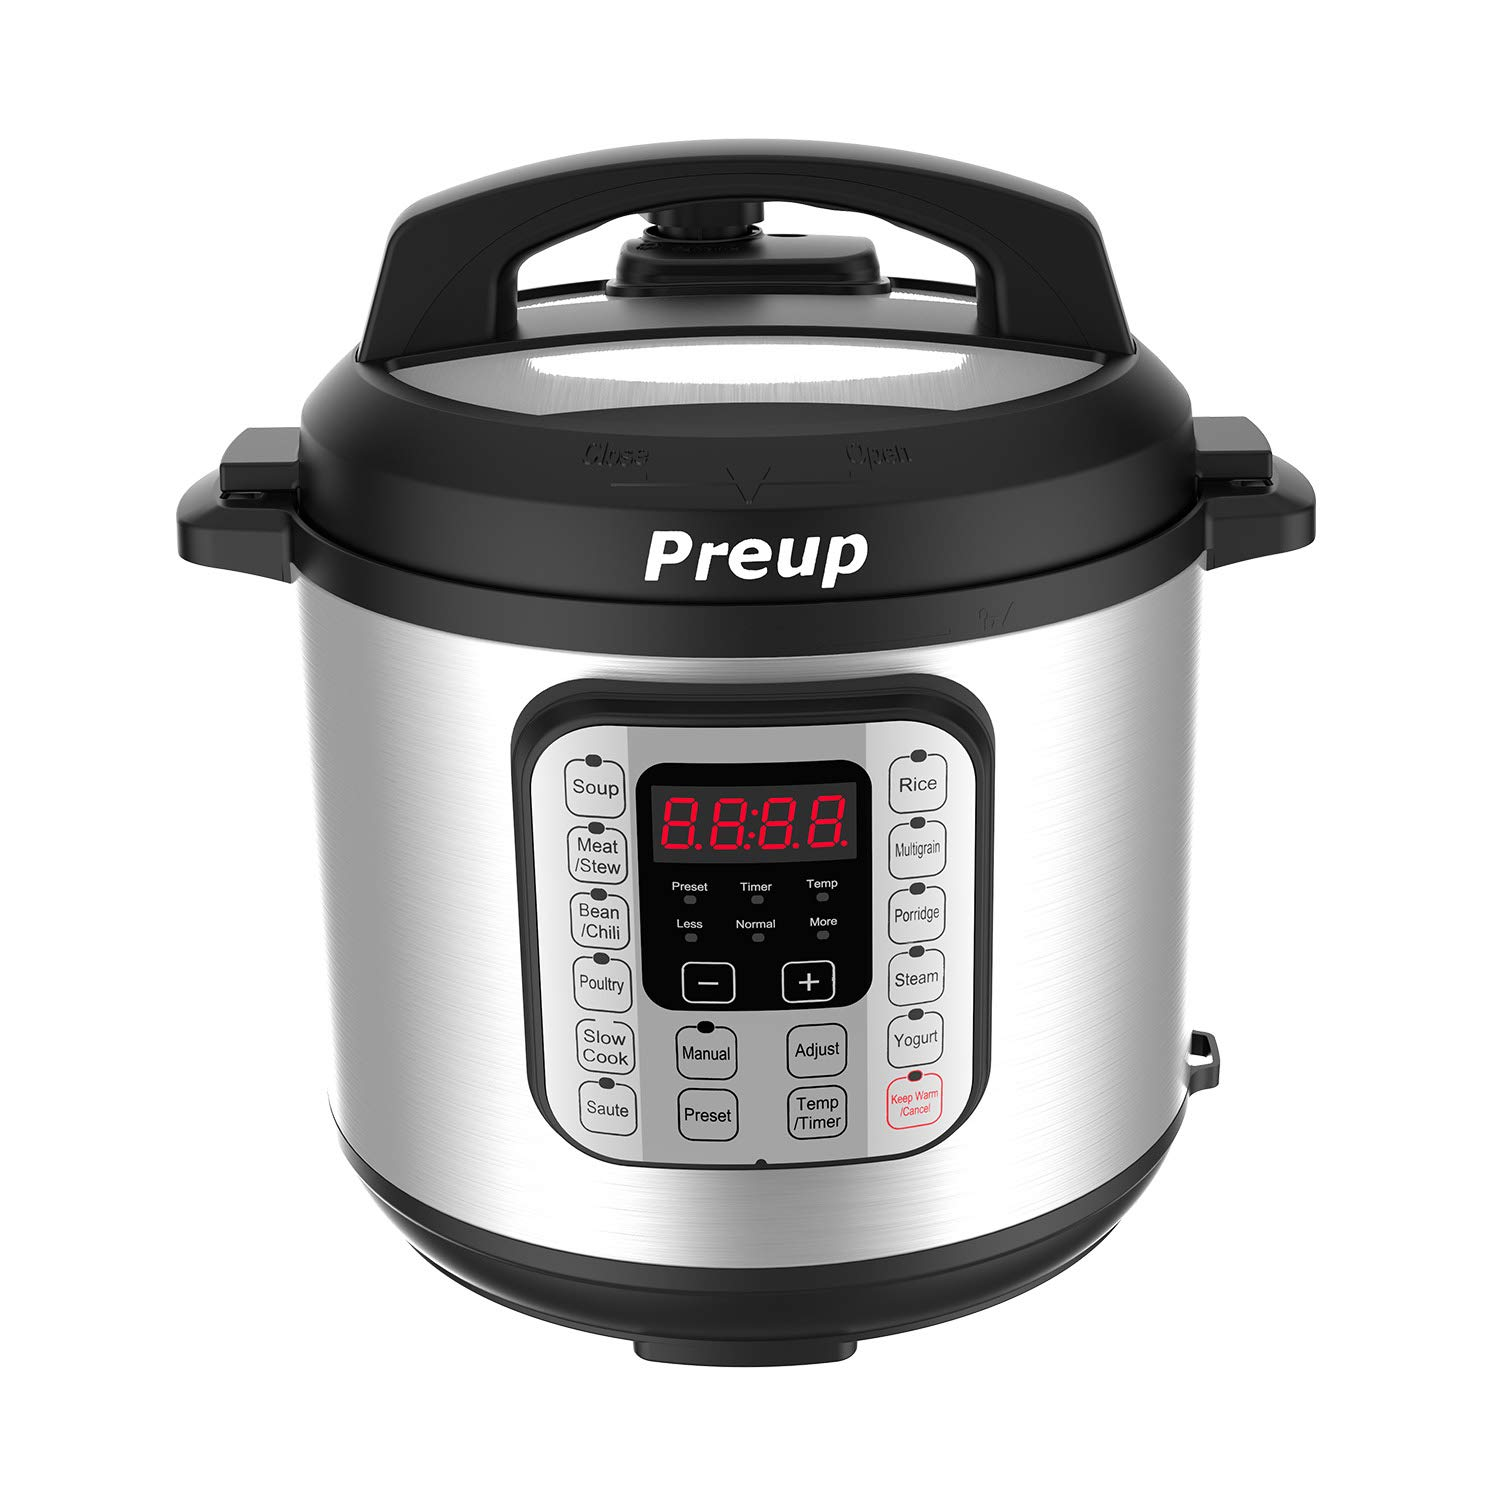 PREUP Electric Pressure Cooker, 6 Quart 7-in-1 Multi-Use Programmable Slow Cooker, Rice Cooker, Steamer, Saute, Yogurt Maker, Hot Pot and Warmer, Stainless Steel